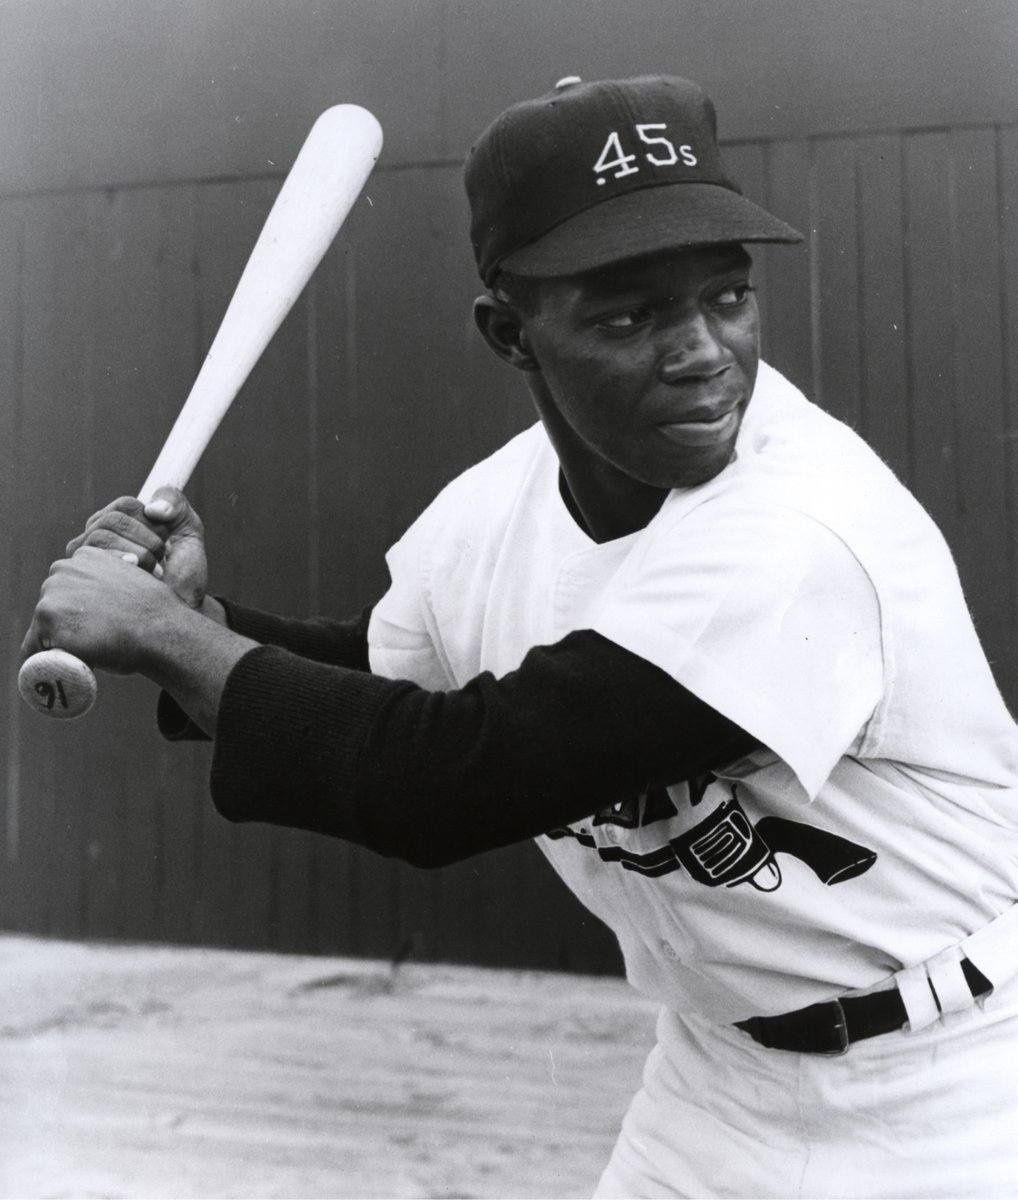 We are sad to learn of the passing of former San Antonio Bullets standout Jimmy Wynn. Wynn played for San Antonio in 1963 and went on to be named to three NL All-Star teams.